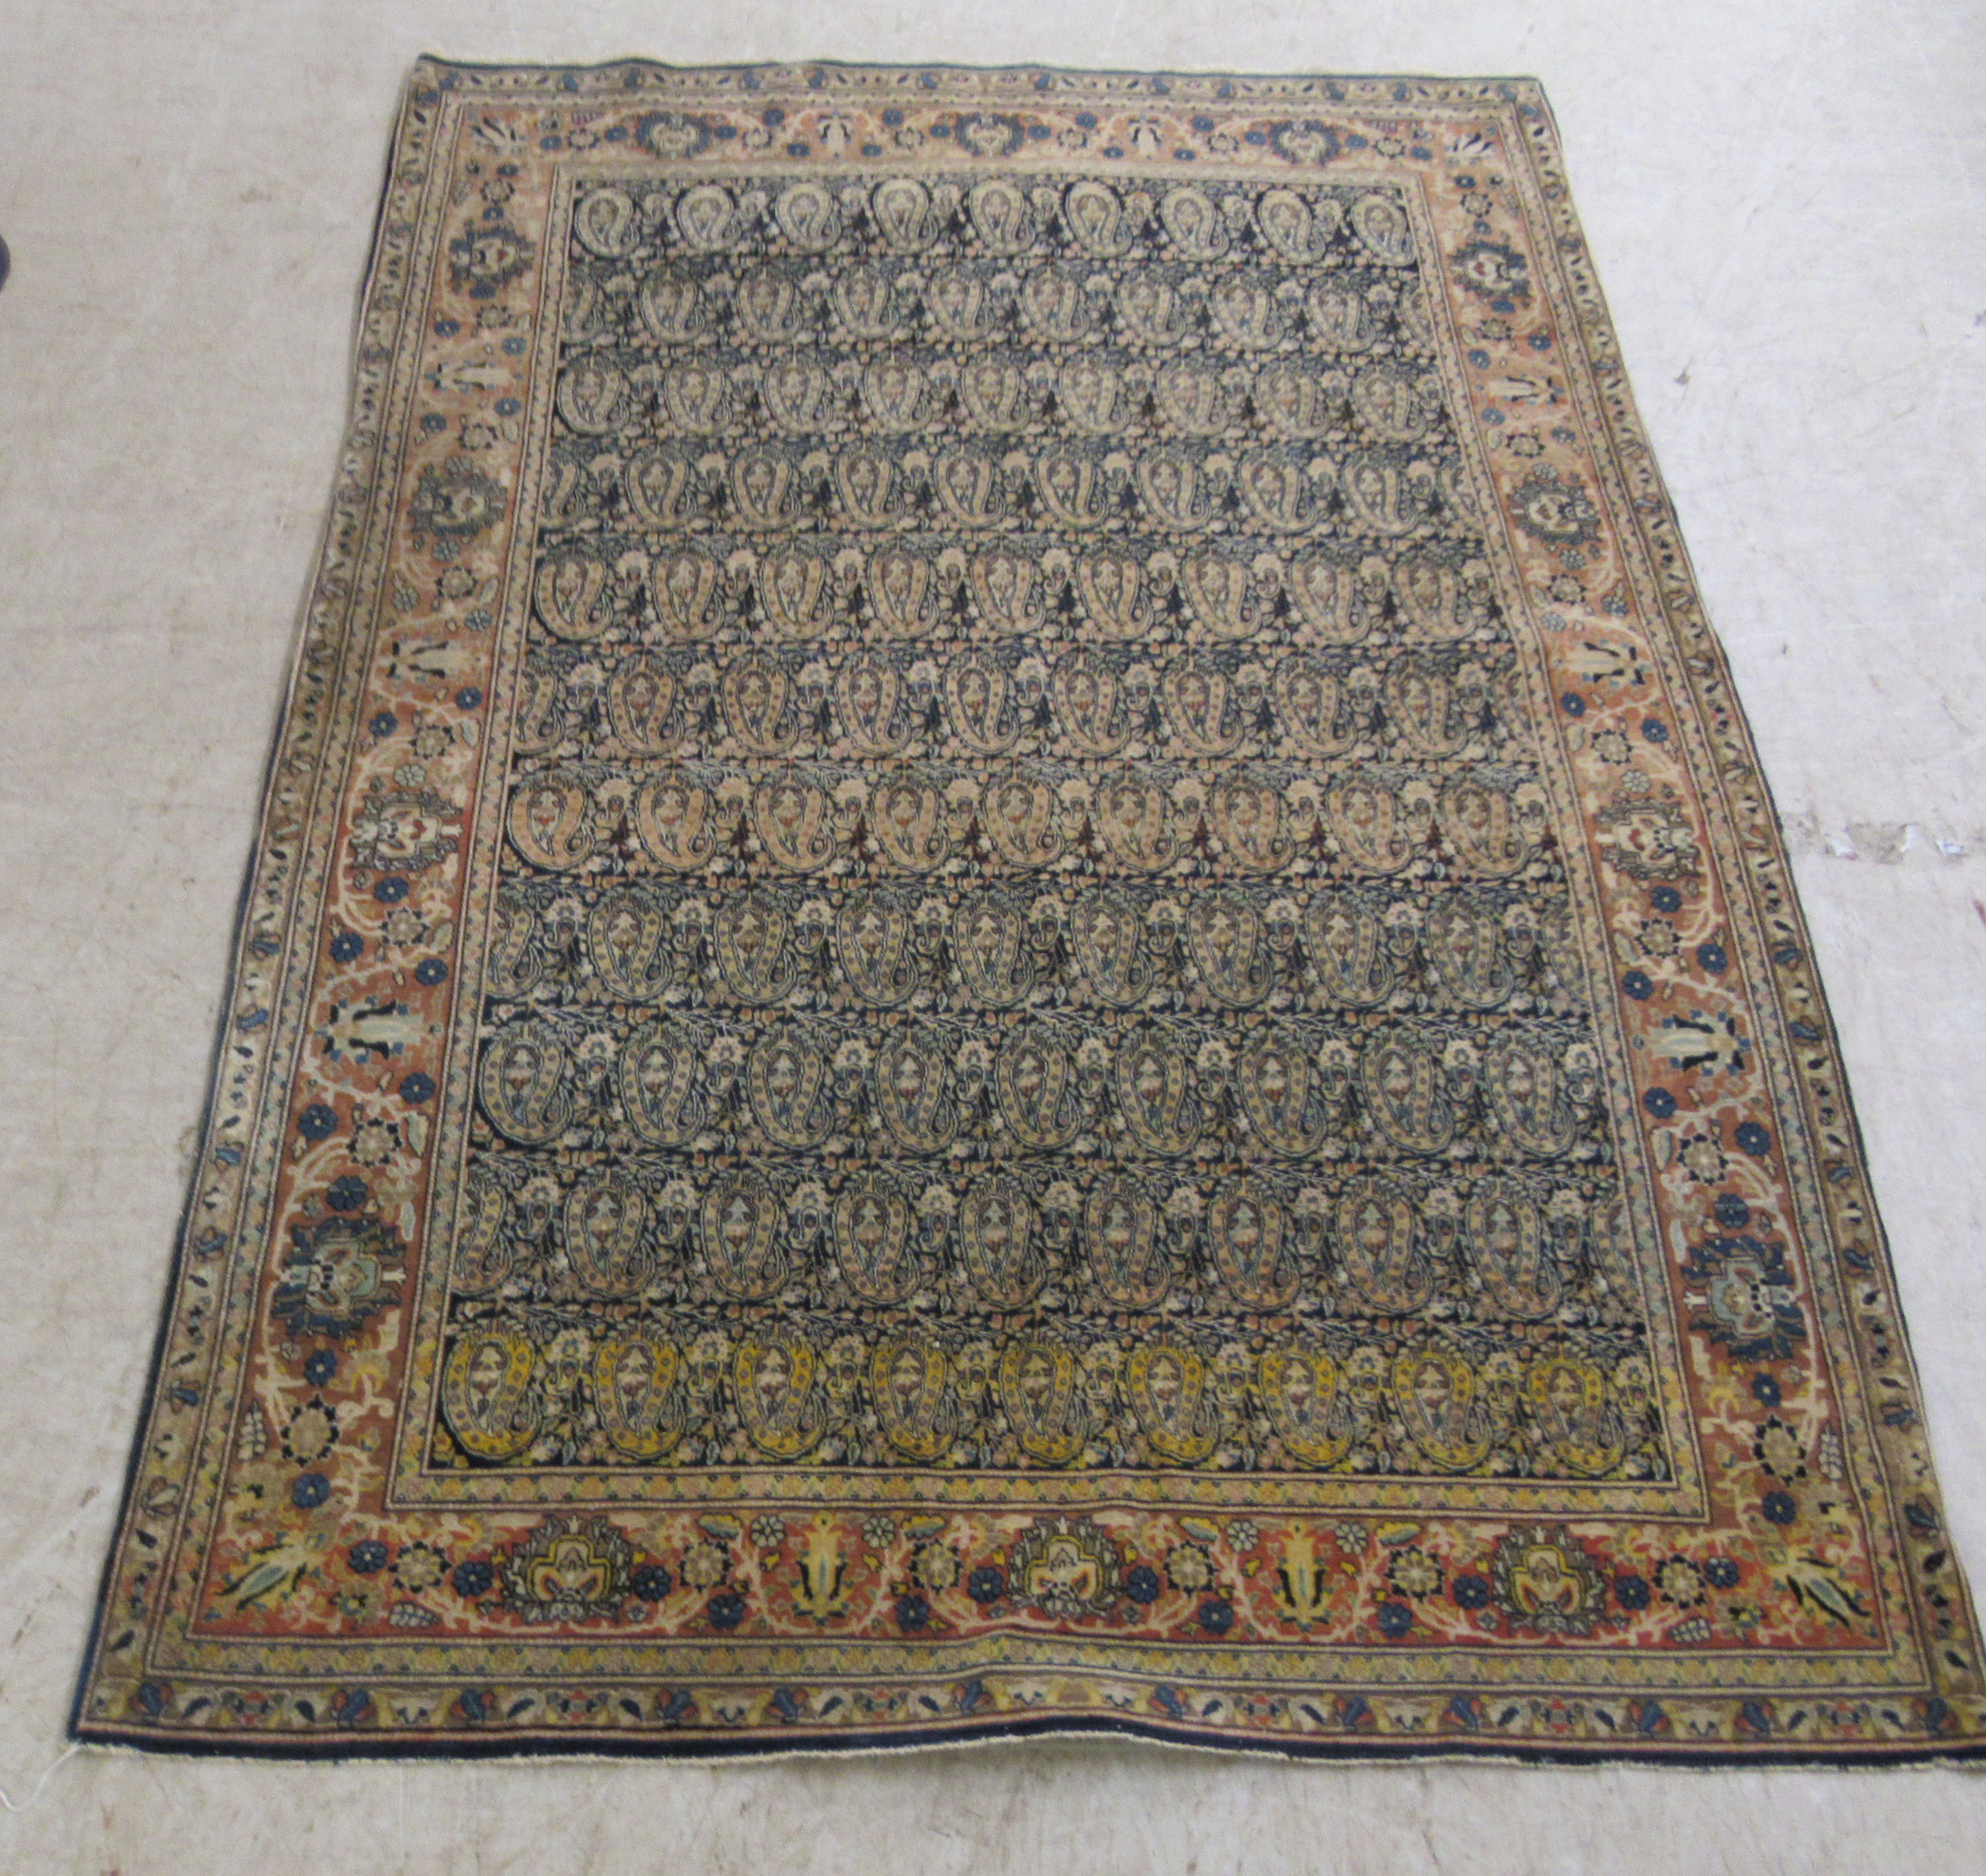 A Persian rug decorated with repeating stylised designs, bordered by floral and foliage, on a